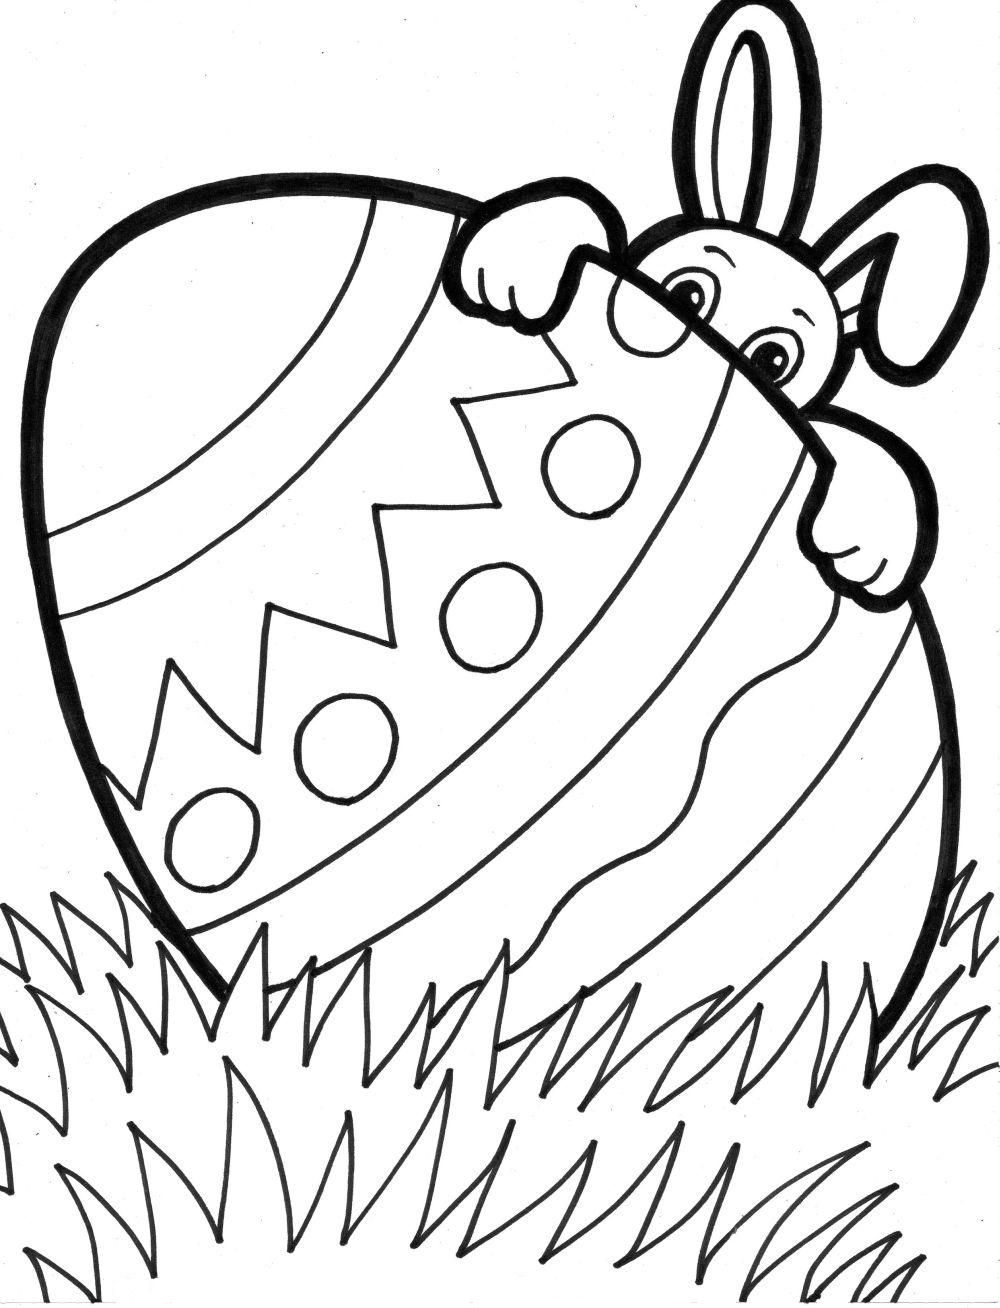 Free Easter Printable Coloring Pages for Kids Games and Wallpaper Gallery Of Easter Egg Designs Coloring Pages to Print